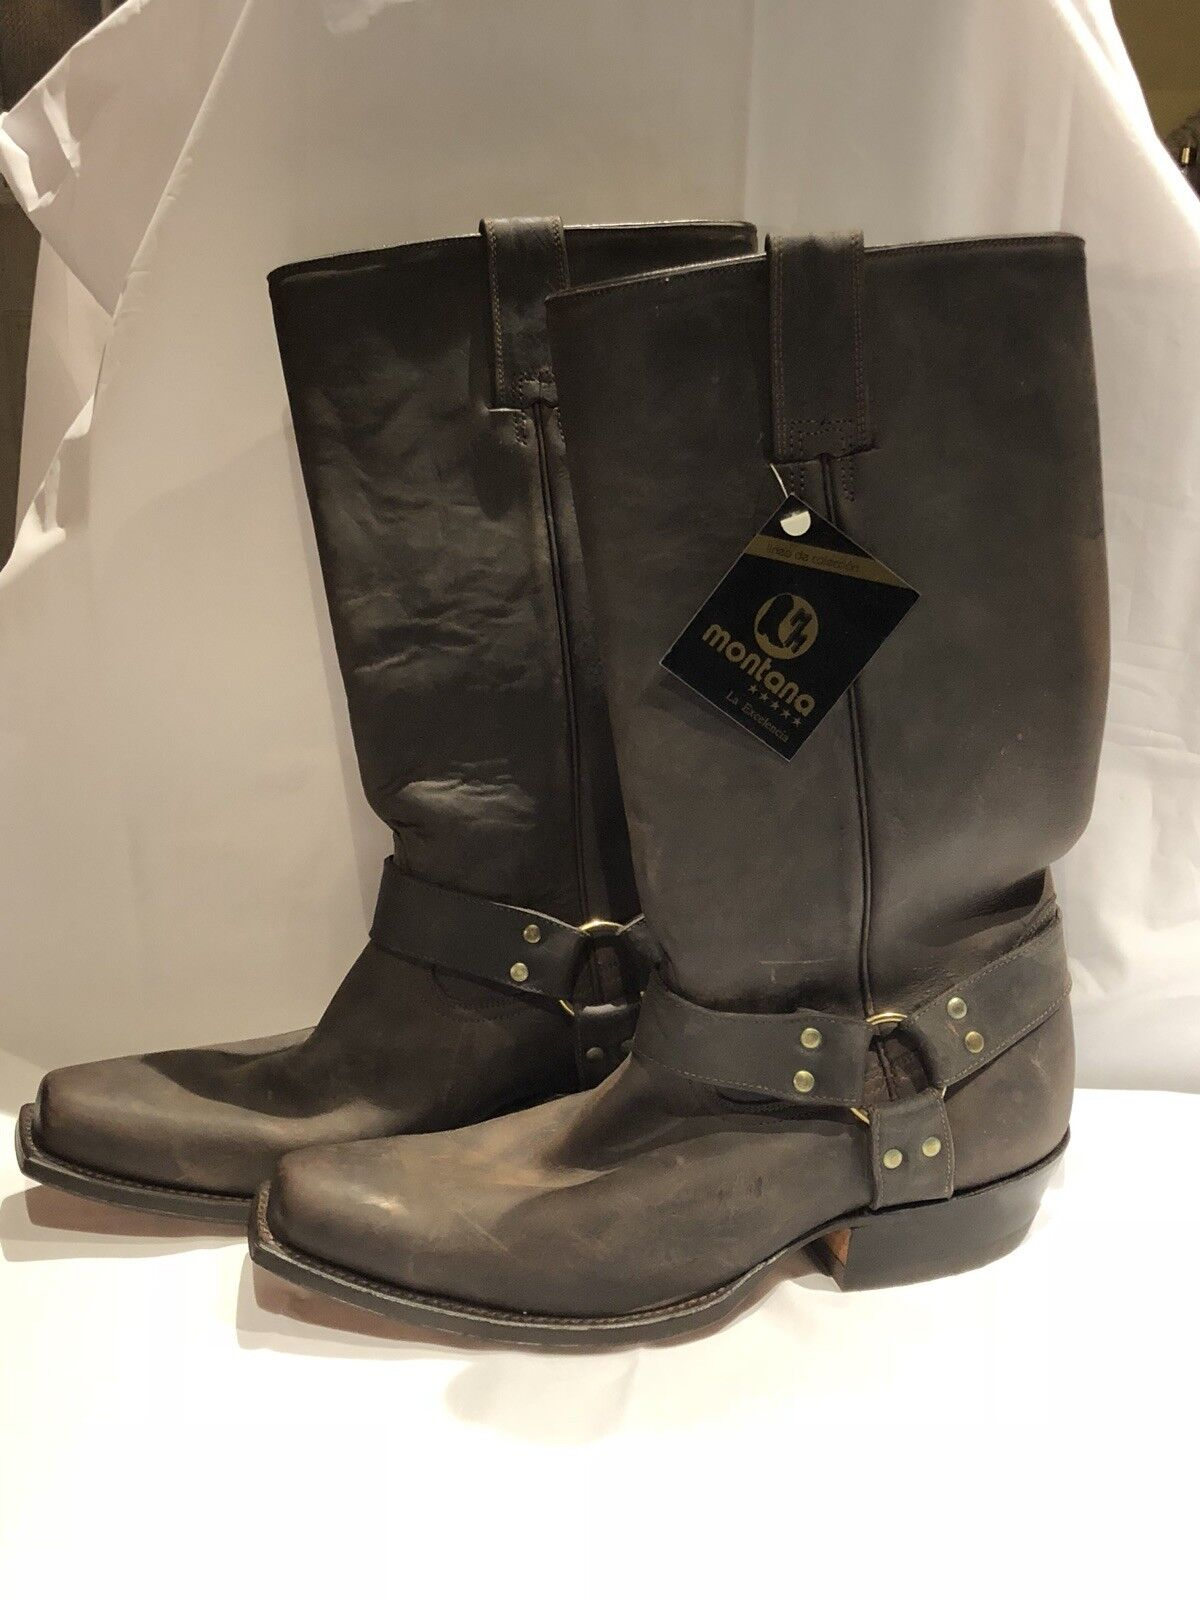 MONTANA mens Roper Style Leather Cowboy Boots Size 9